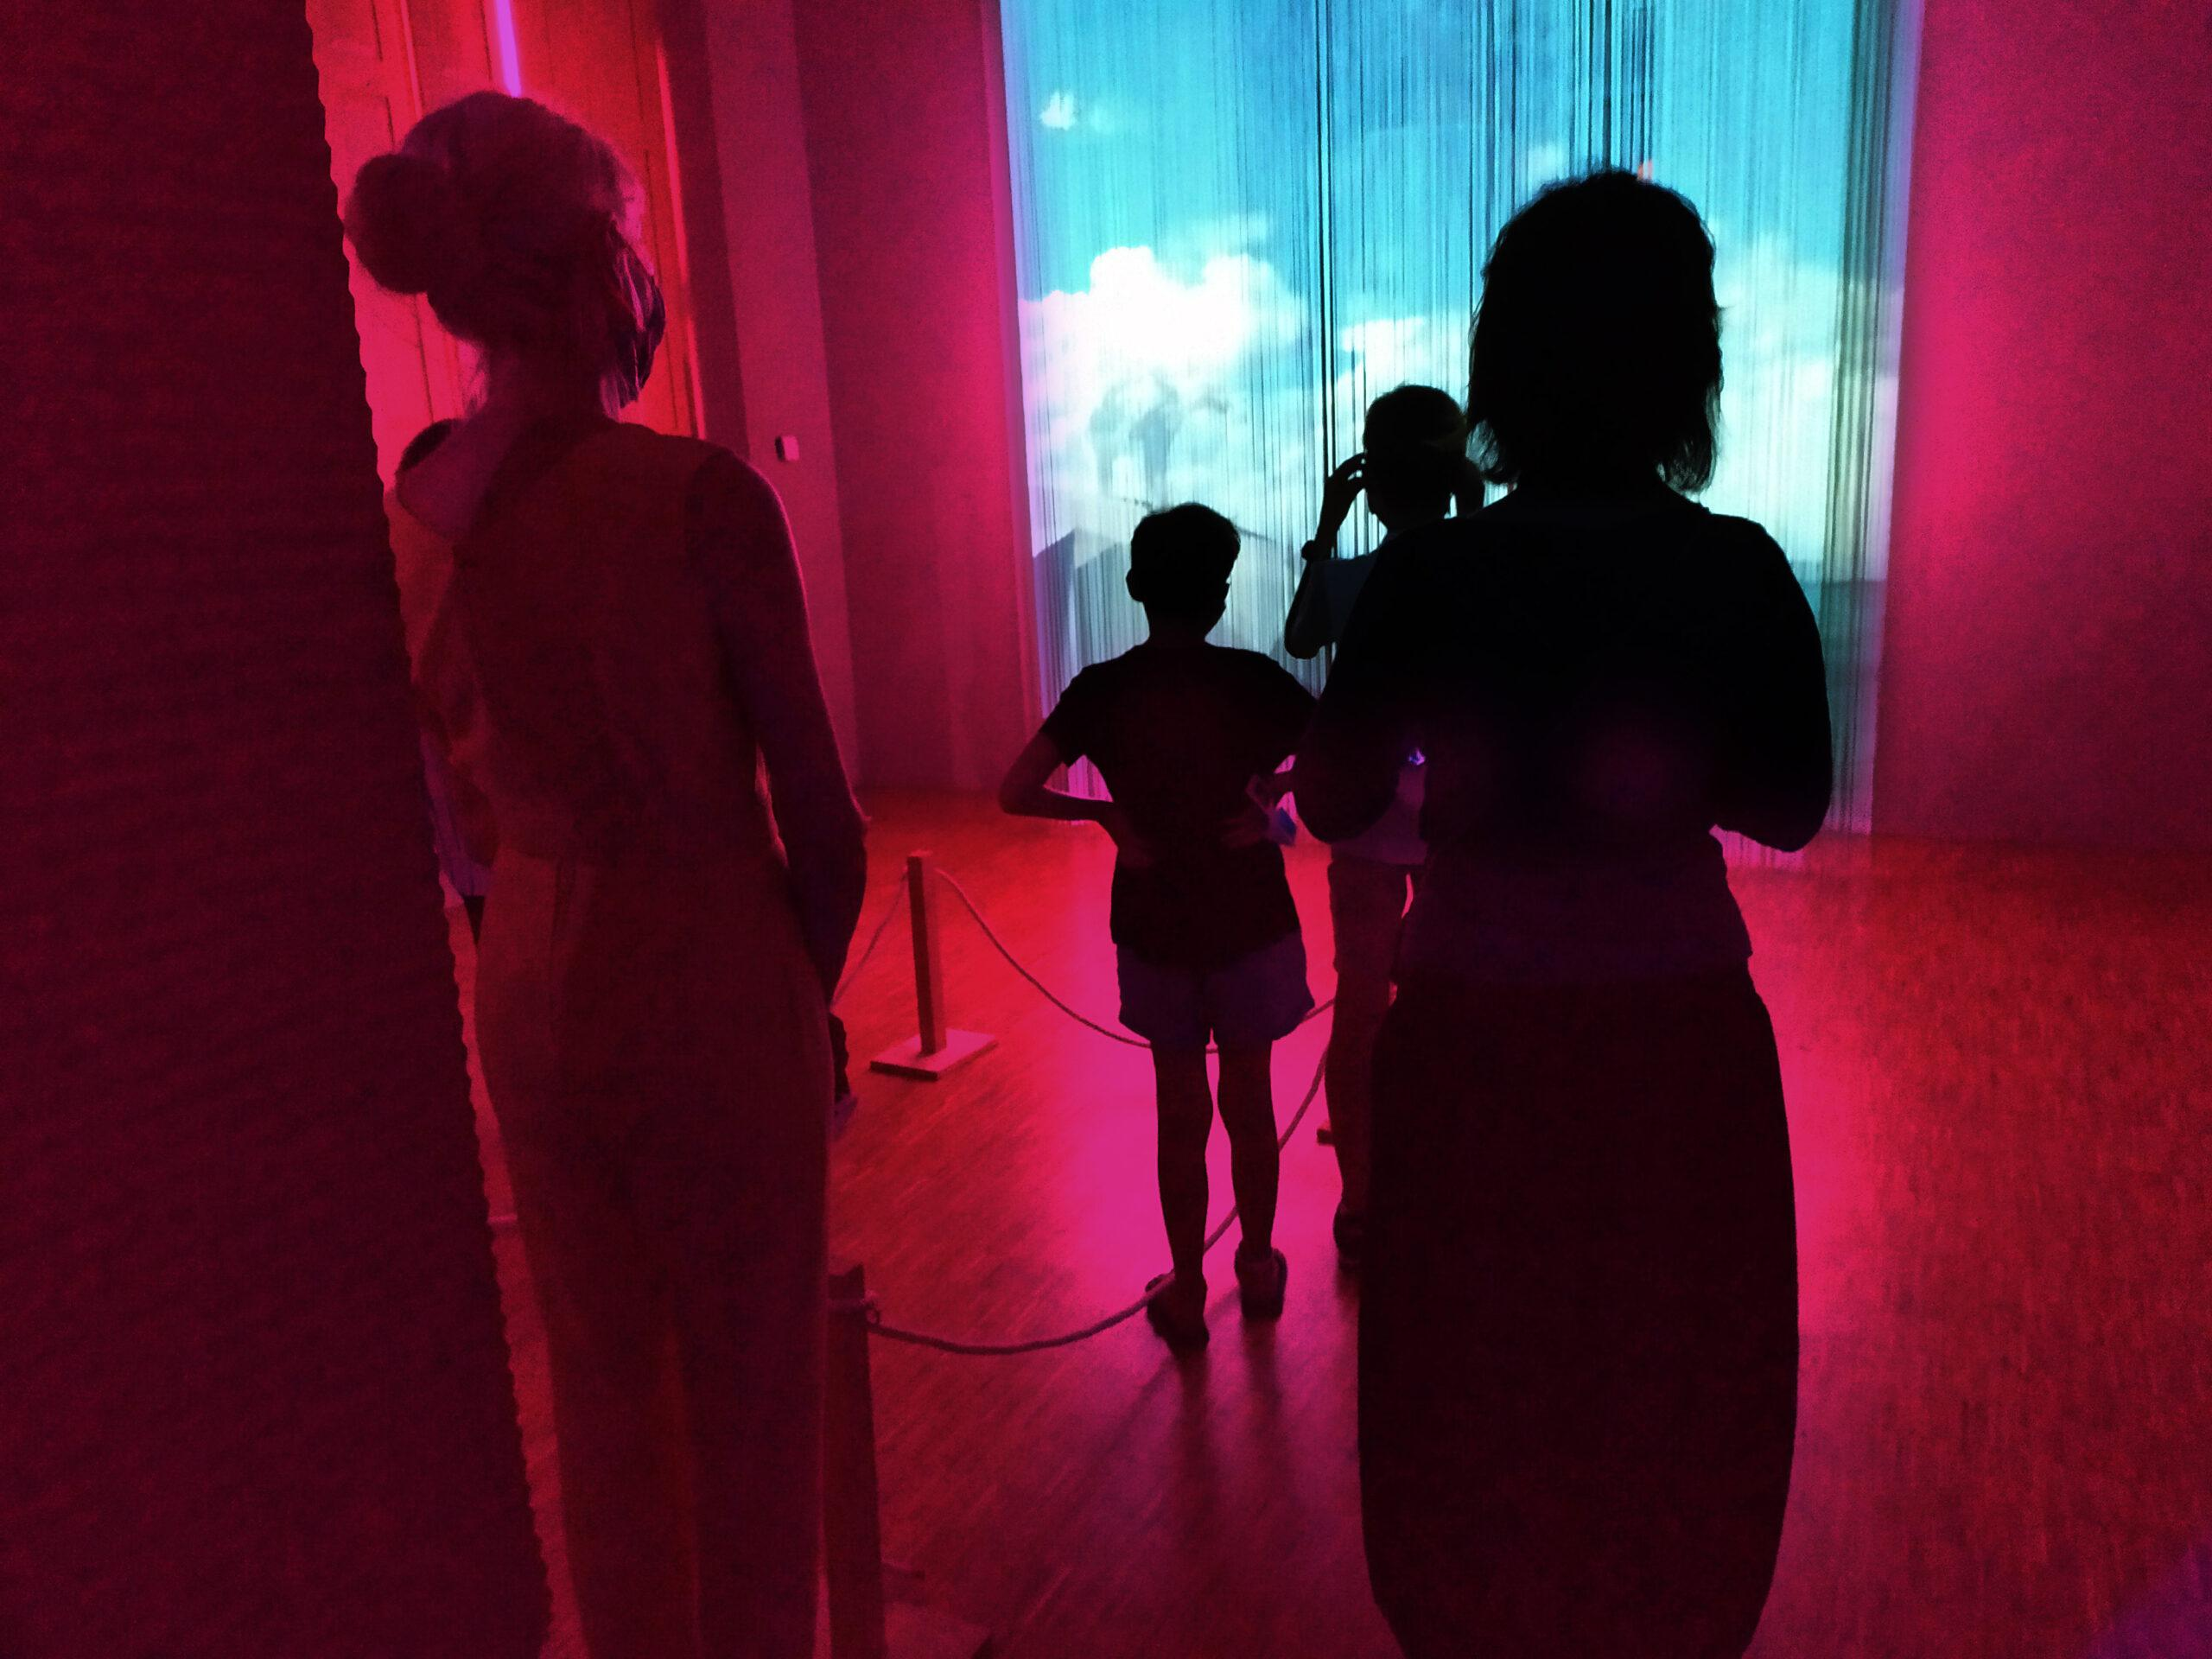 IMAGO_experience 4D Museo Meina